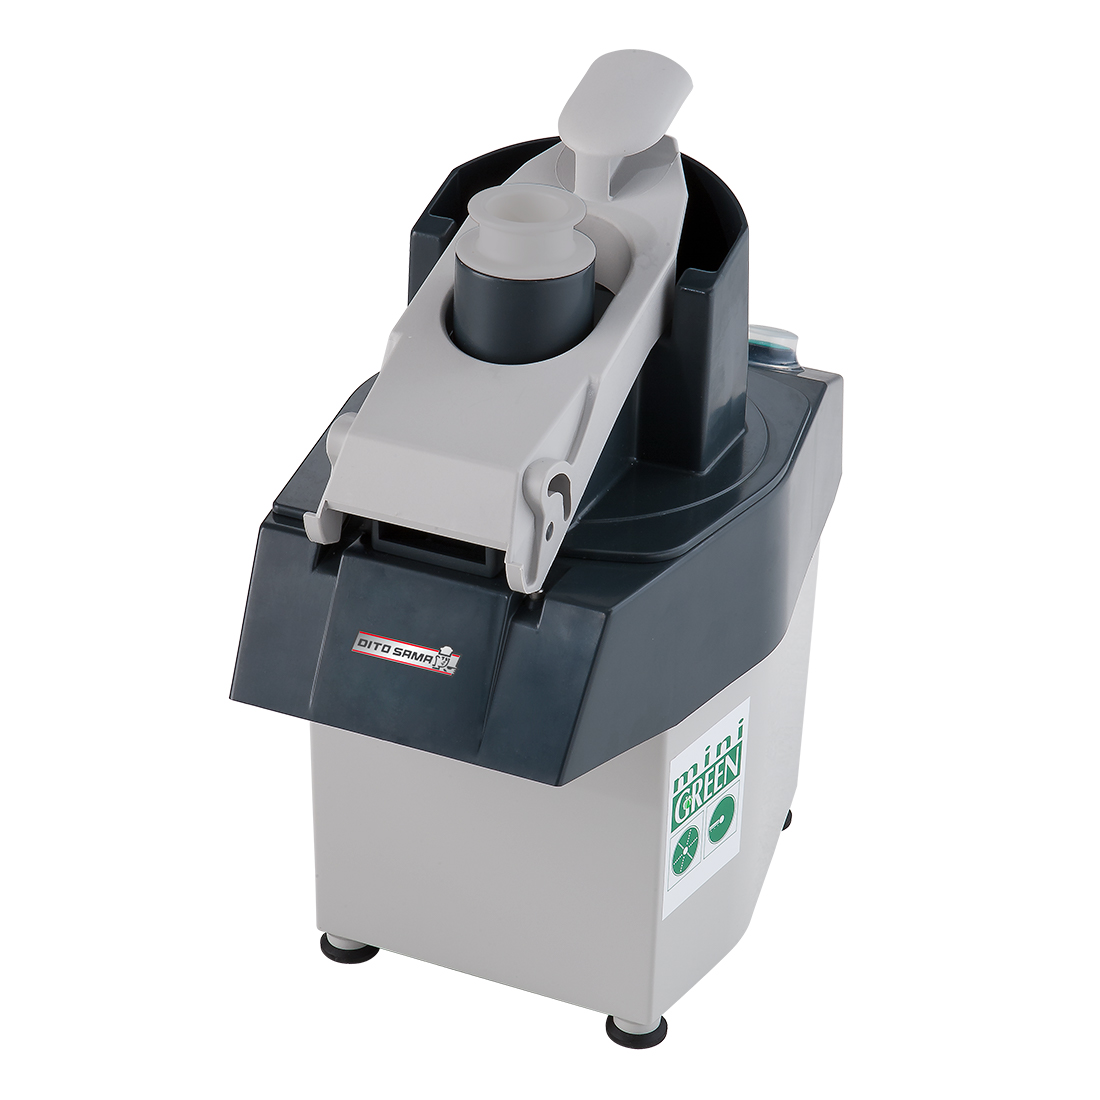 Dito Sama Vegetable slicer single speed 250w - Minigreen